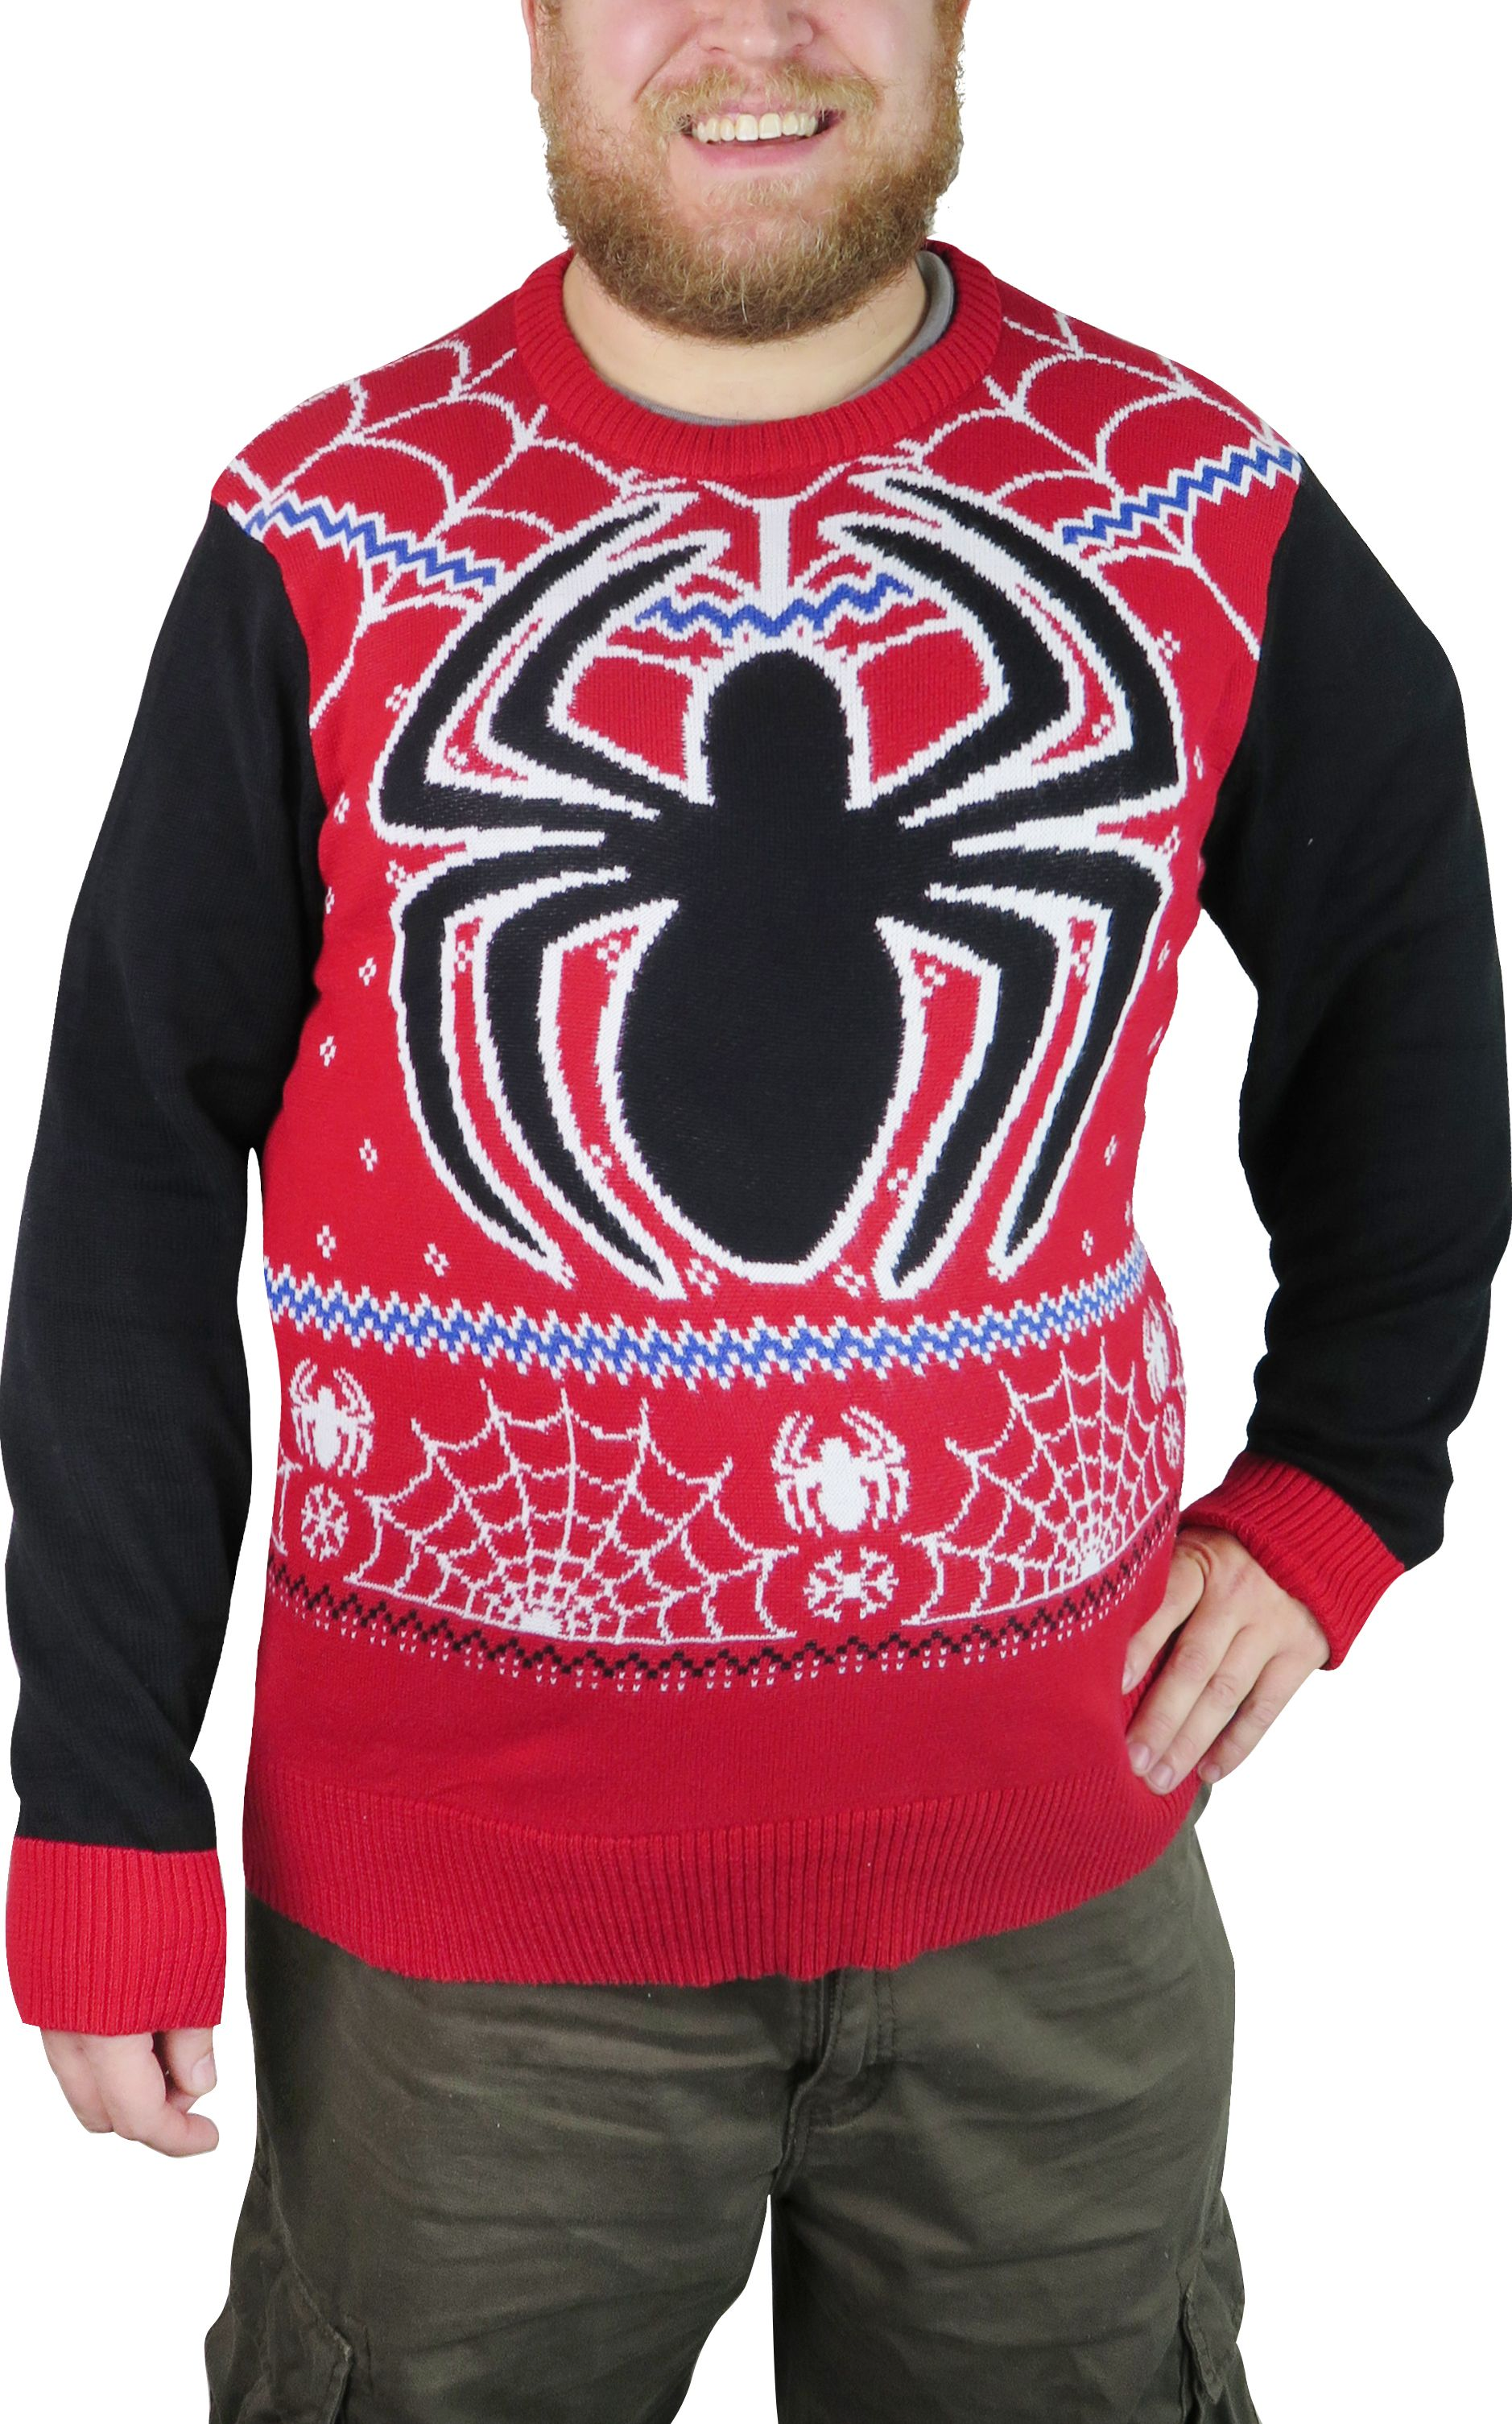 Superhero Ugly Christmas Sweaters.Spiderman Snowflakes Men S Ugly Christmas Sweater Holiday